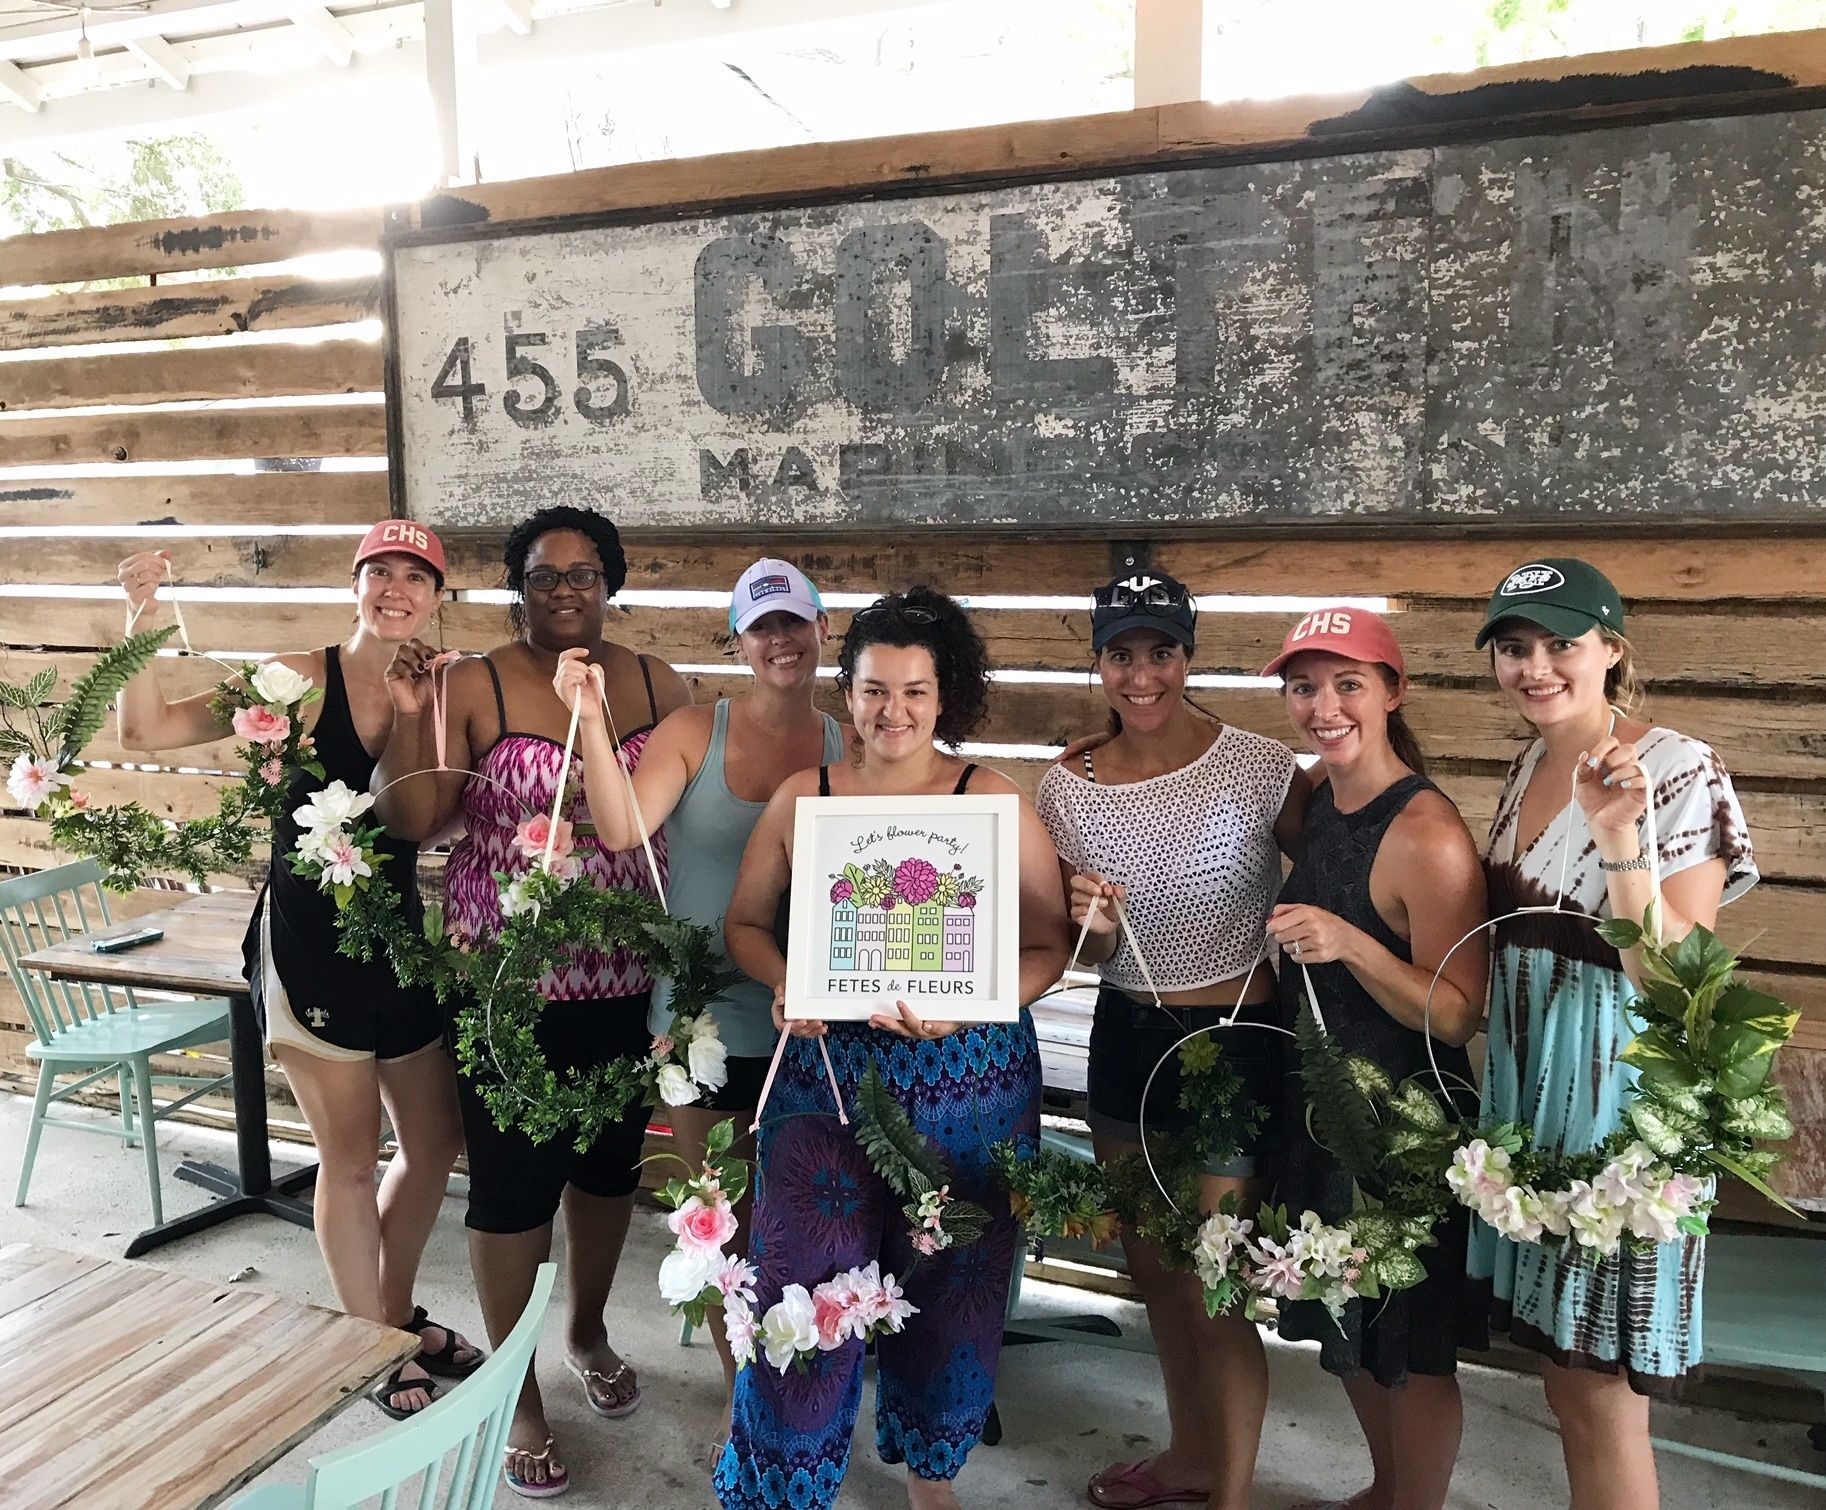 flower crowns for a classy charleston bachelorette weekend in 2018